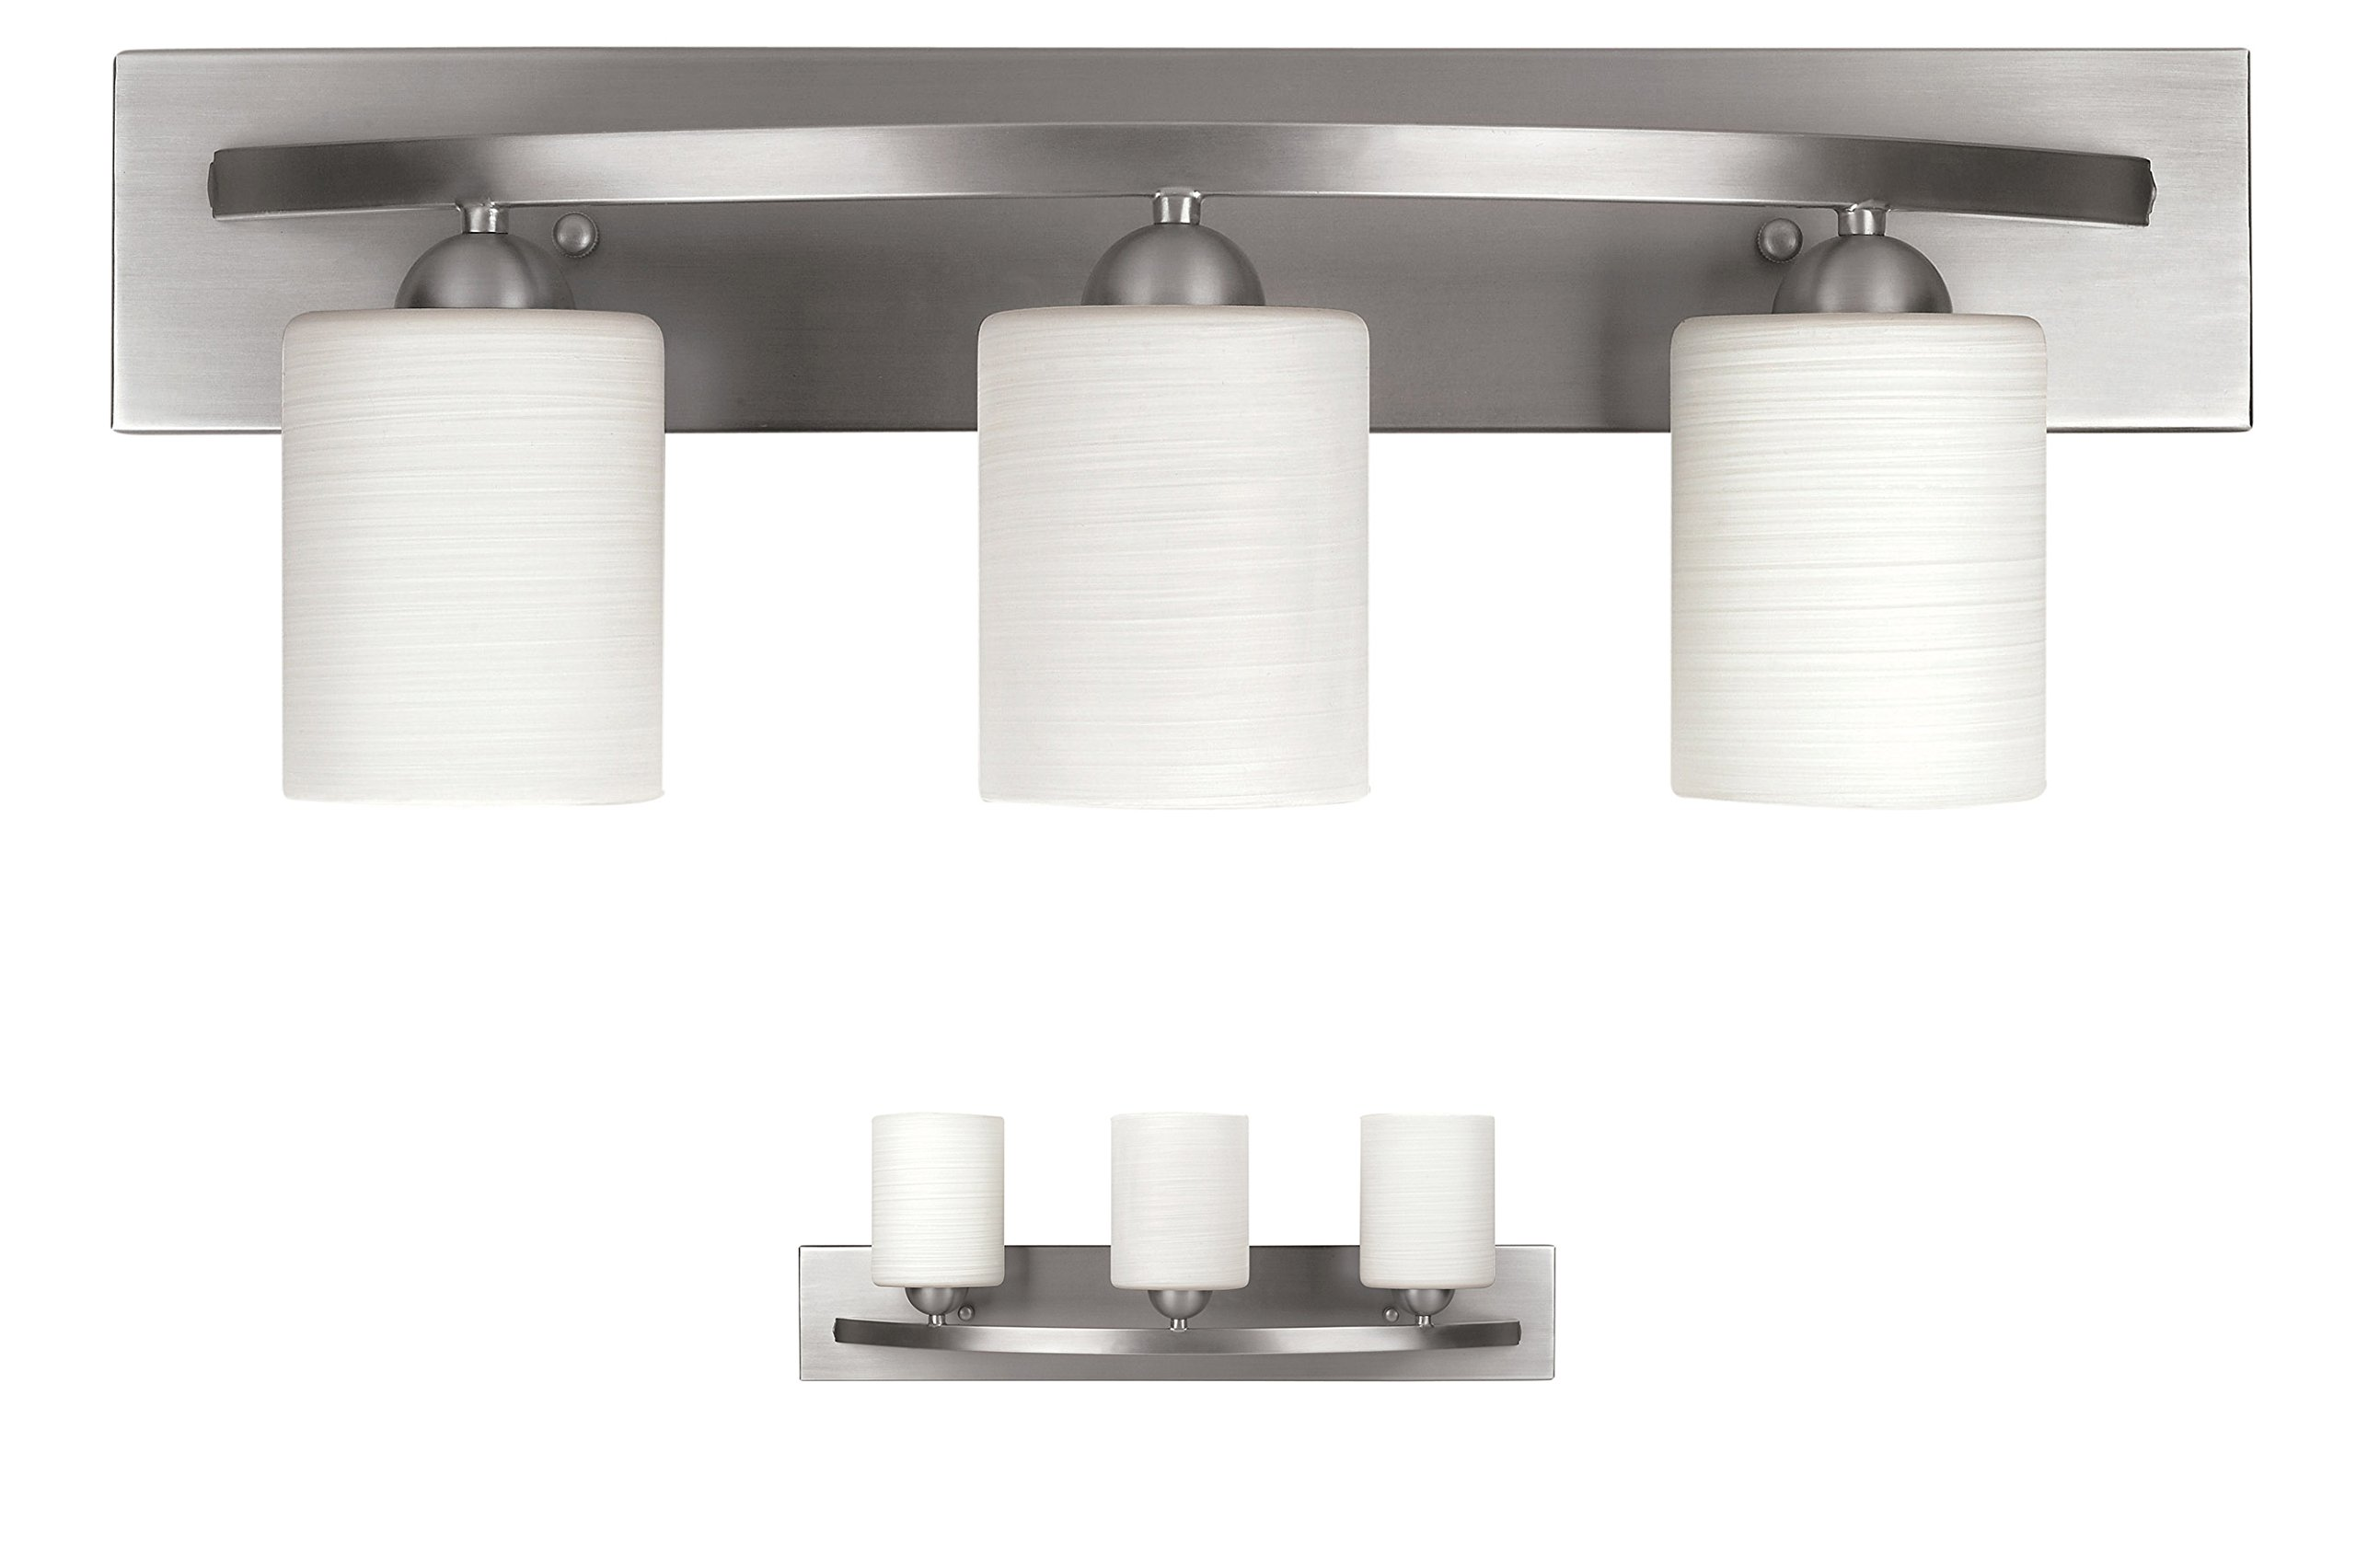 Bennington IVL370A03BPT 3 Bulb Vanity Light Fixture Bath Interior Lighting, Brushed Nickel by Bennington